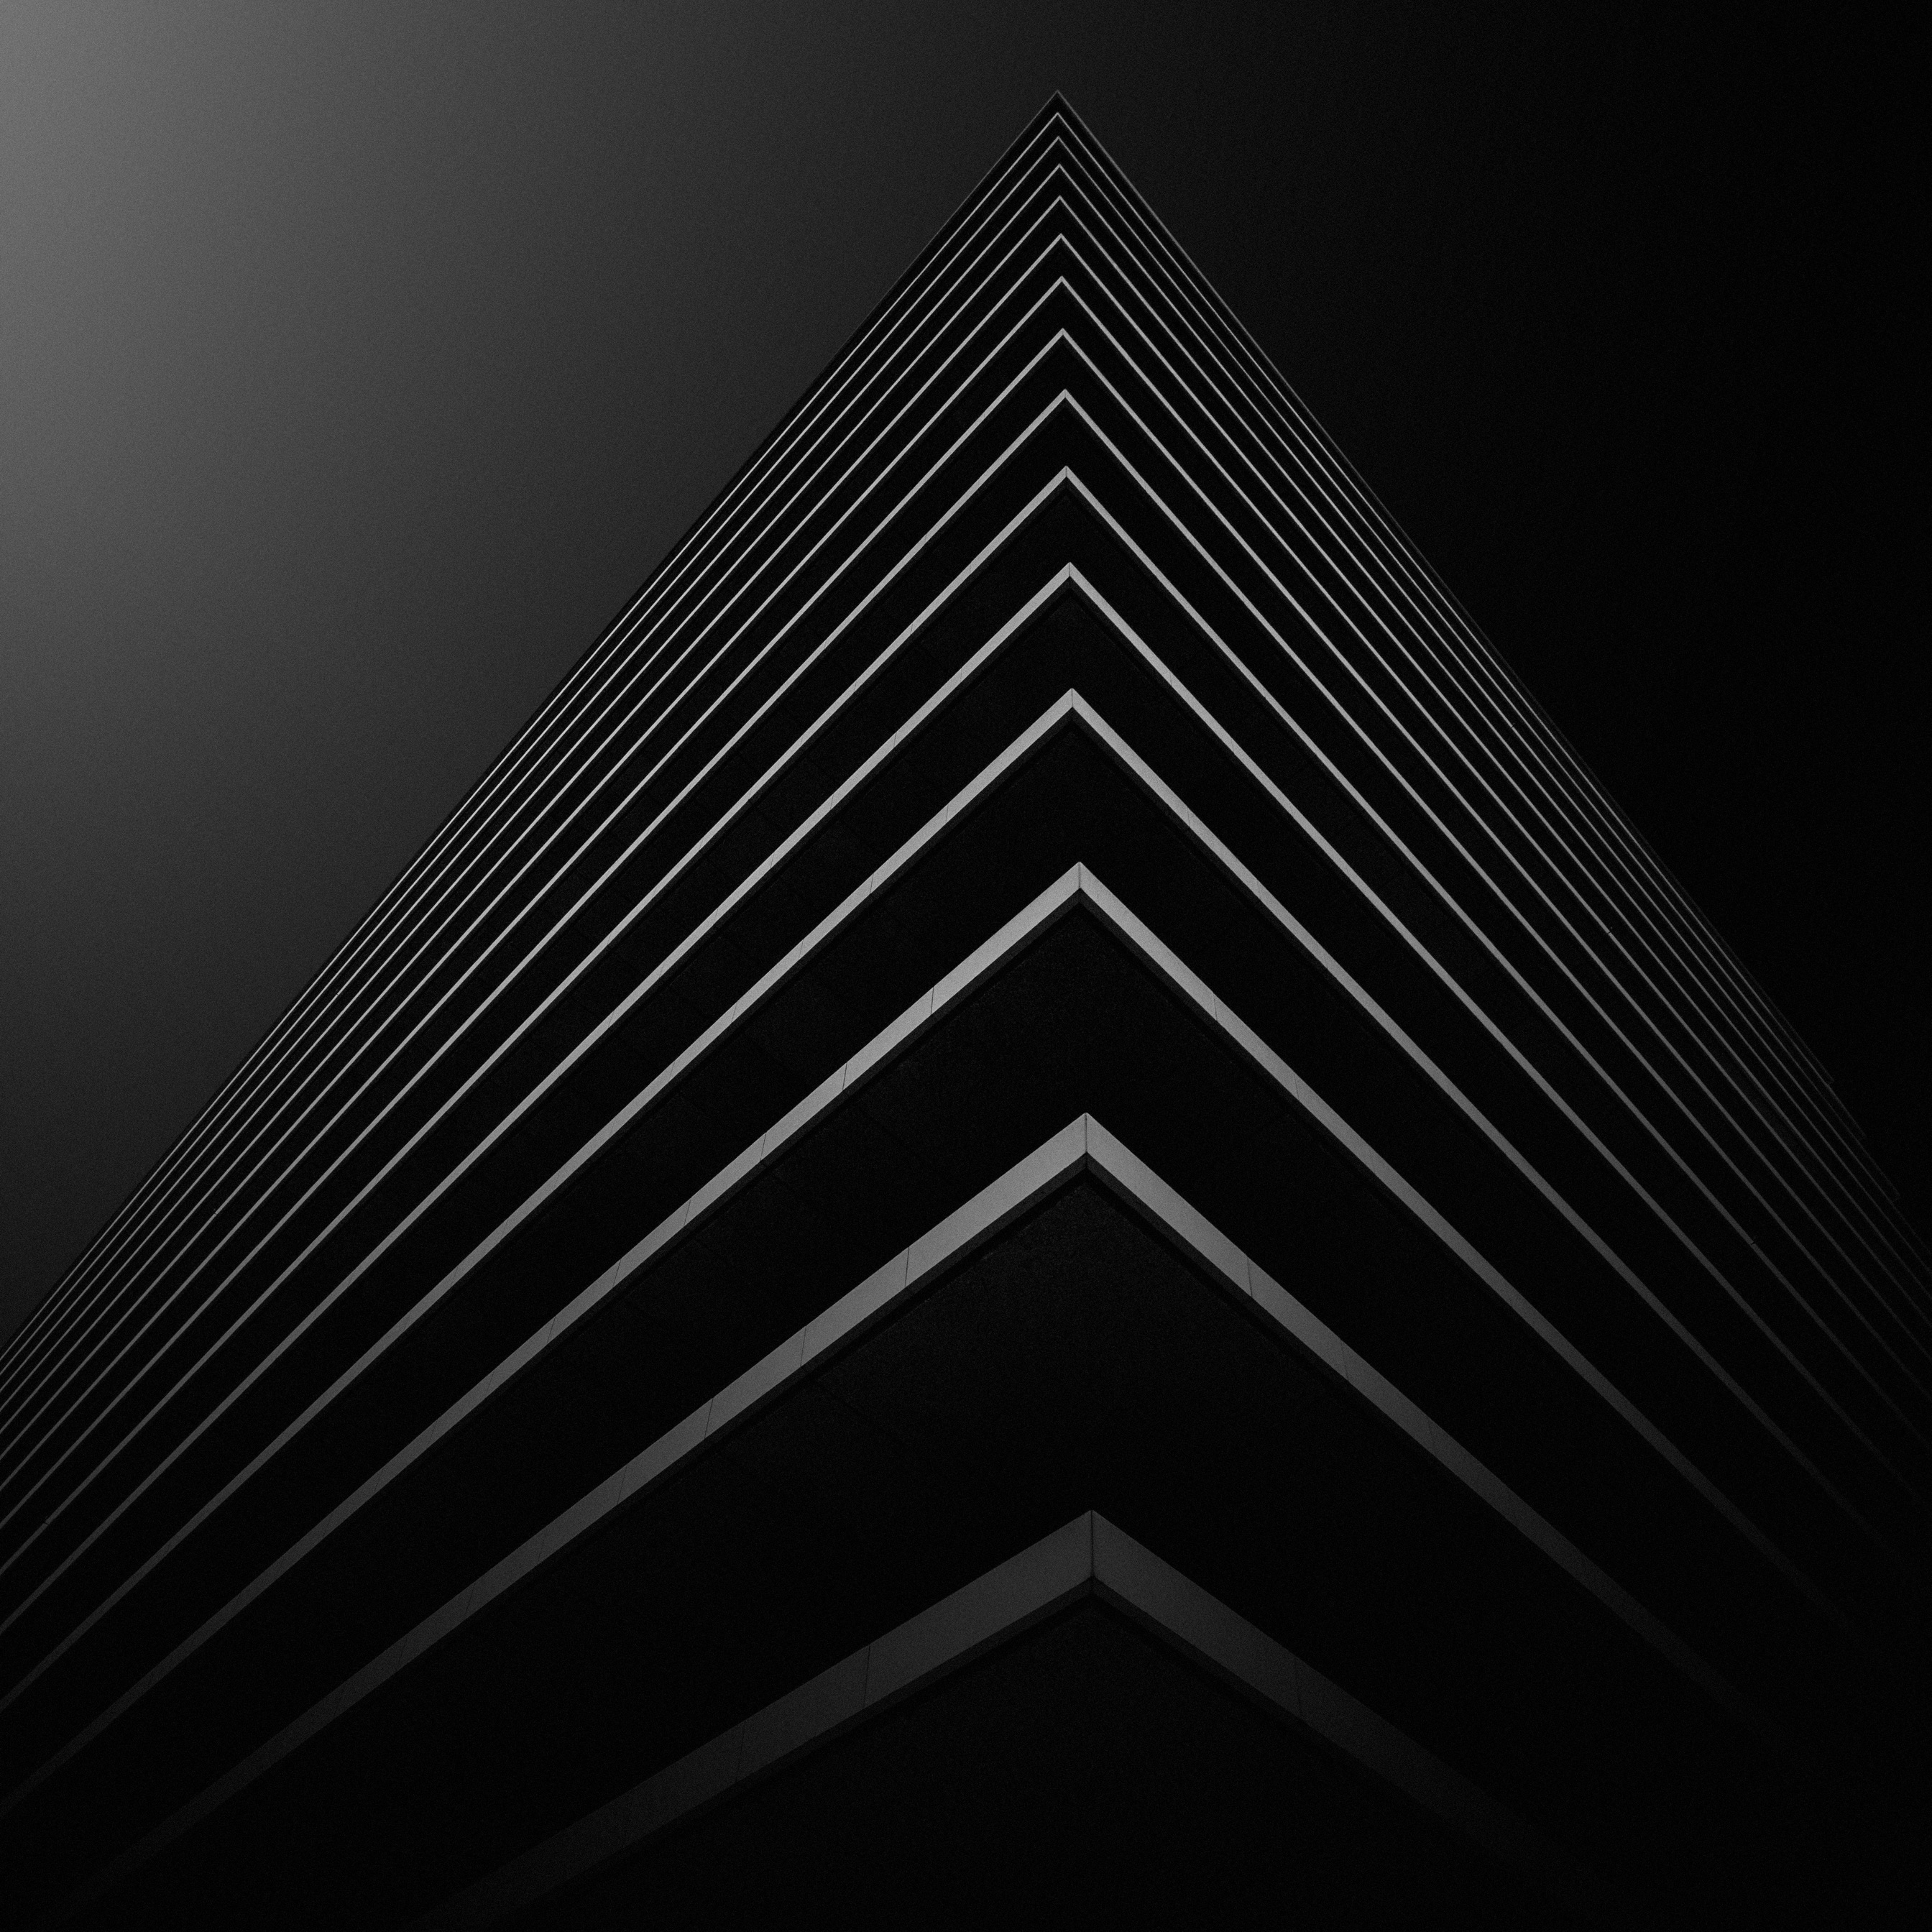 Wallpaper Weekends: Abstract iPhone Wallpapers